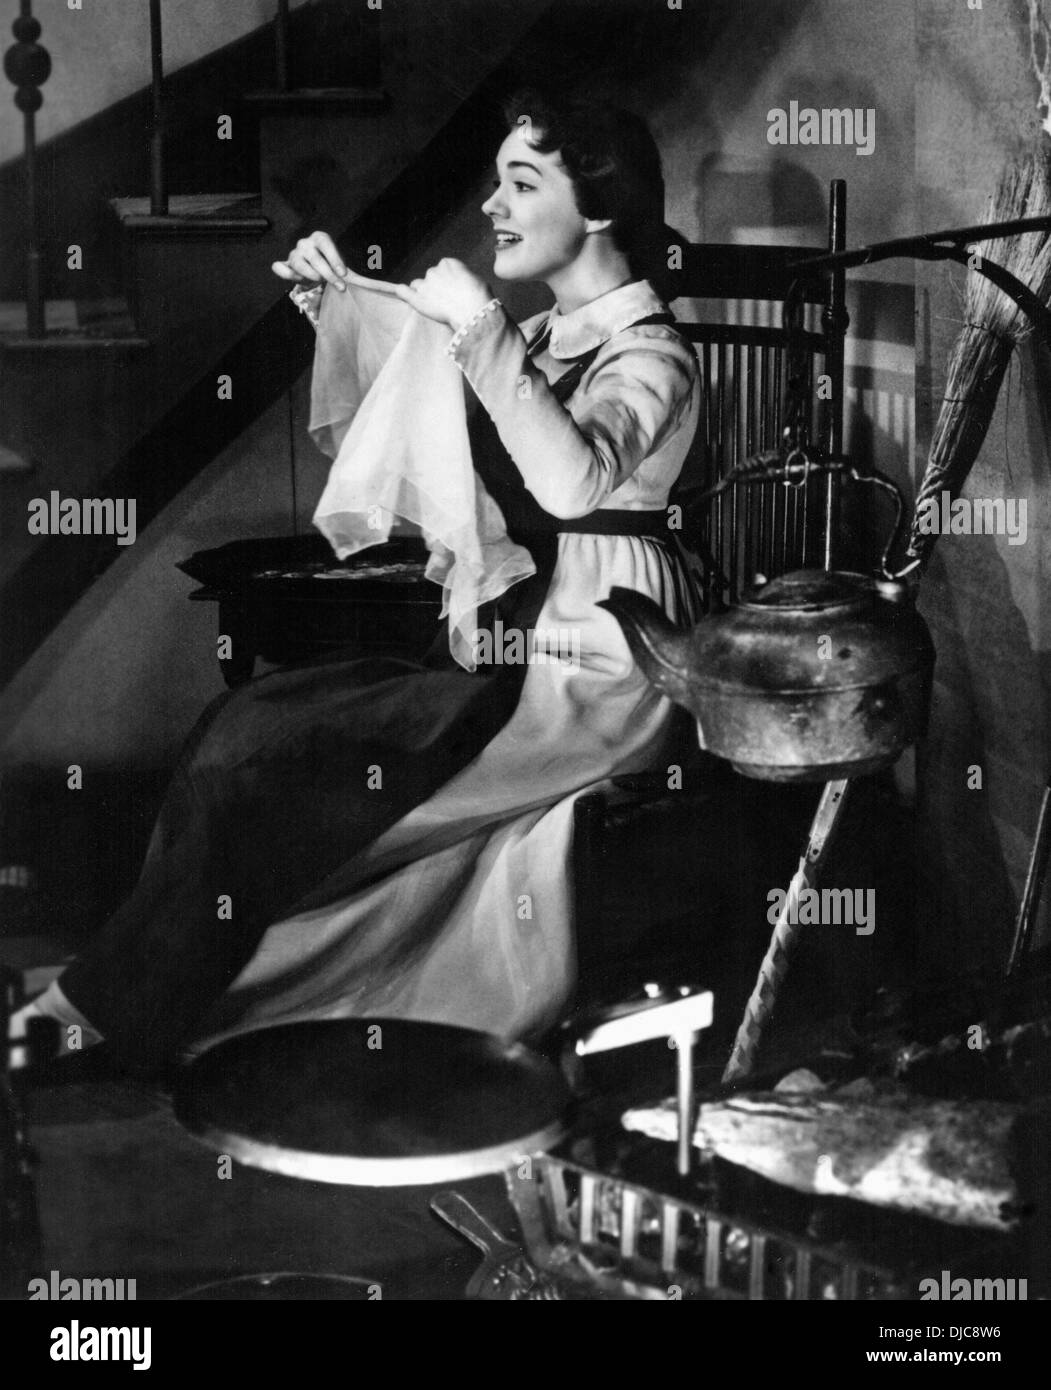 Julie Andrews on-set of the TV Movie, Cinderella, 1957 - Stock Image